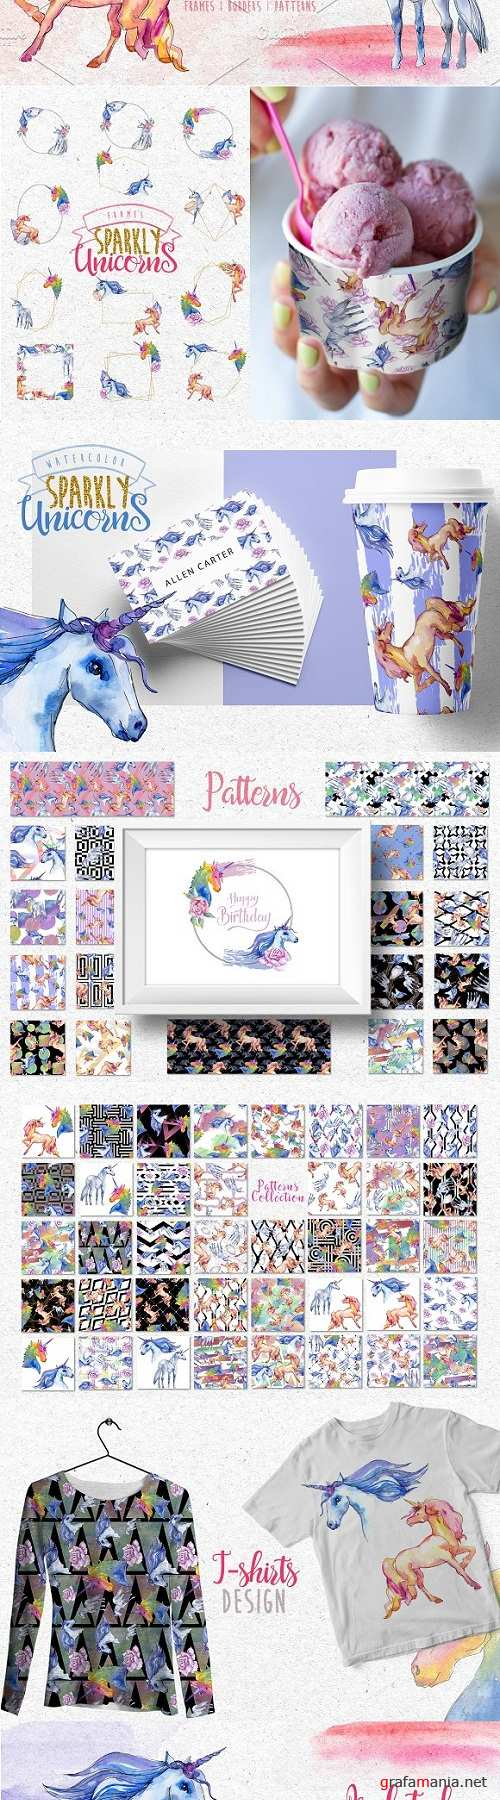 Watercolor Sparkly unicorns PNG set - 3063188 - 3499048